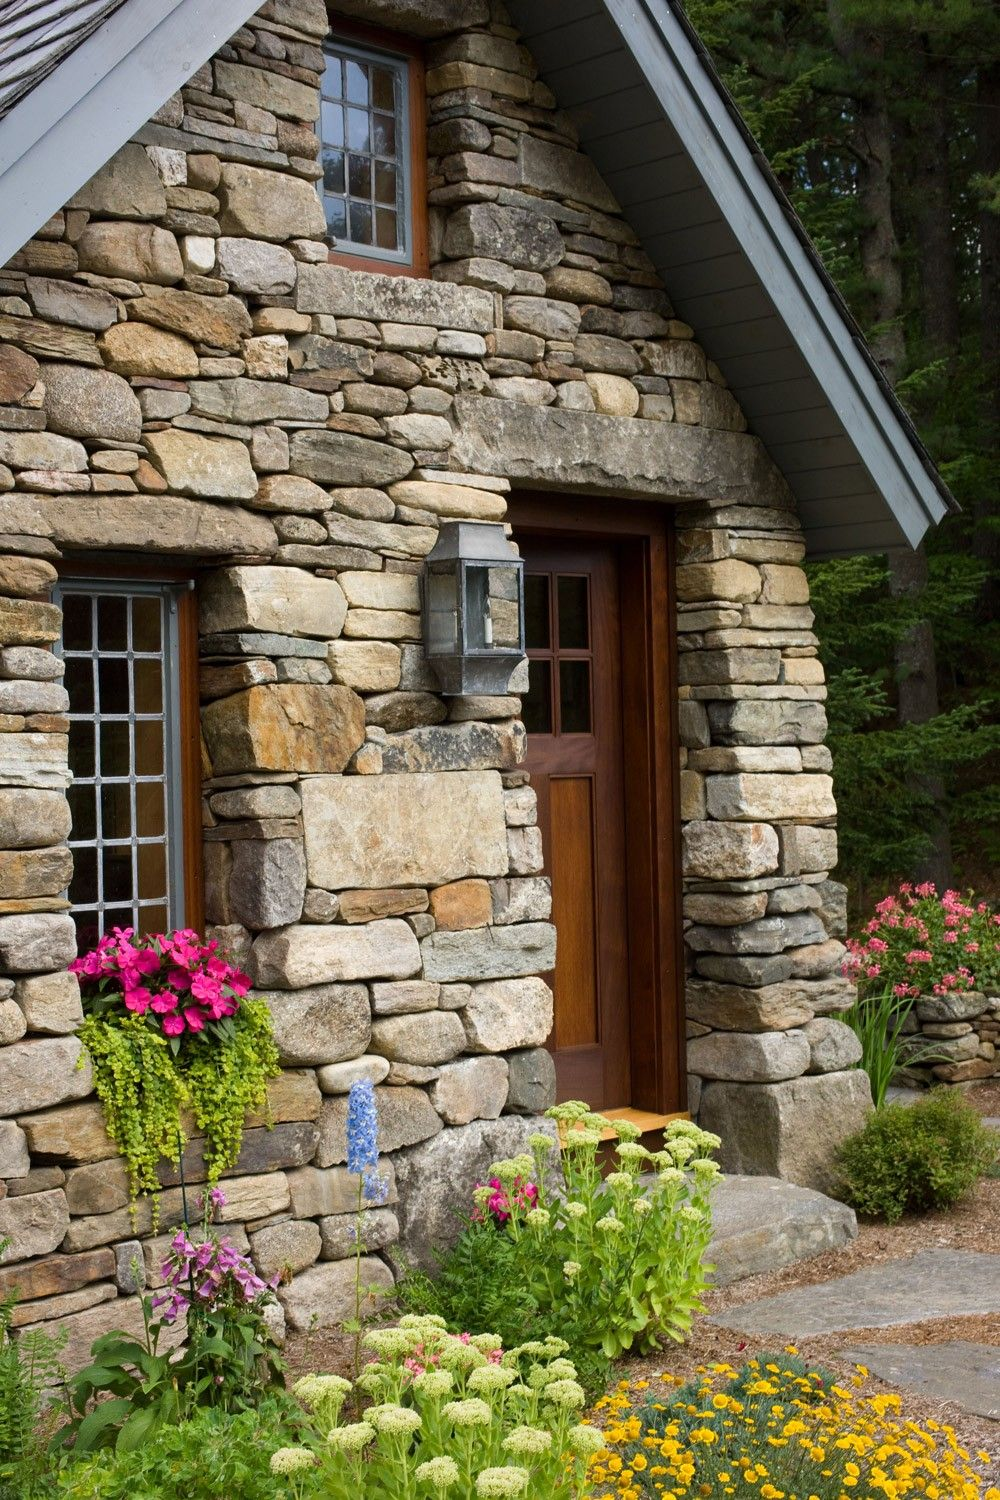 Thoreau-inspired cabin in the country. #entrywayideas